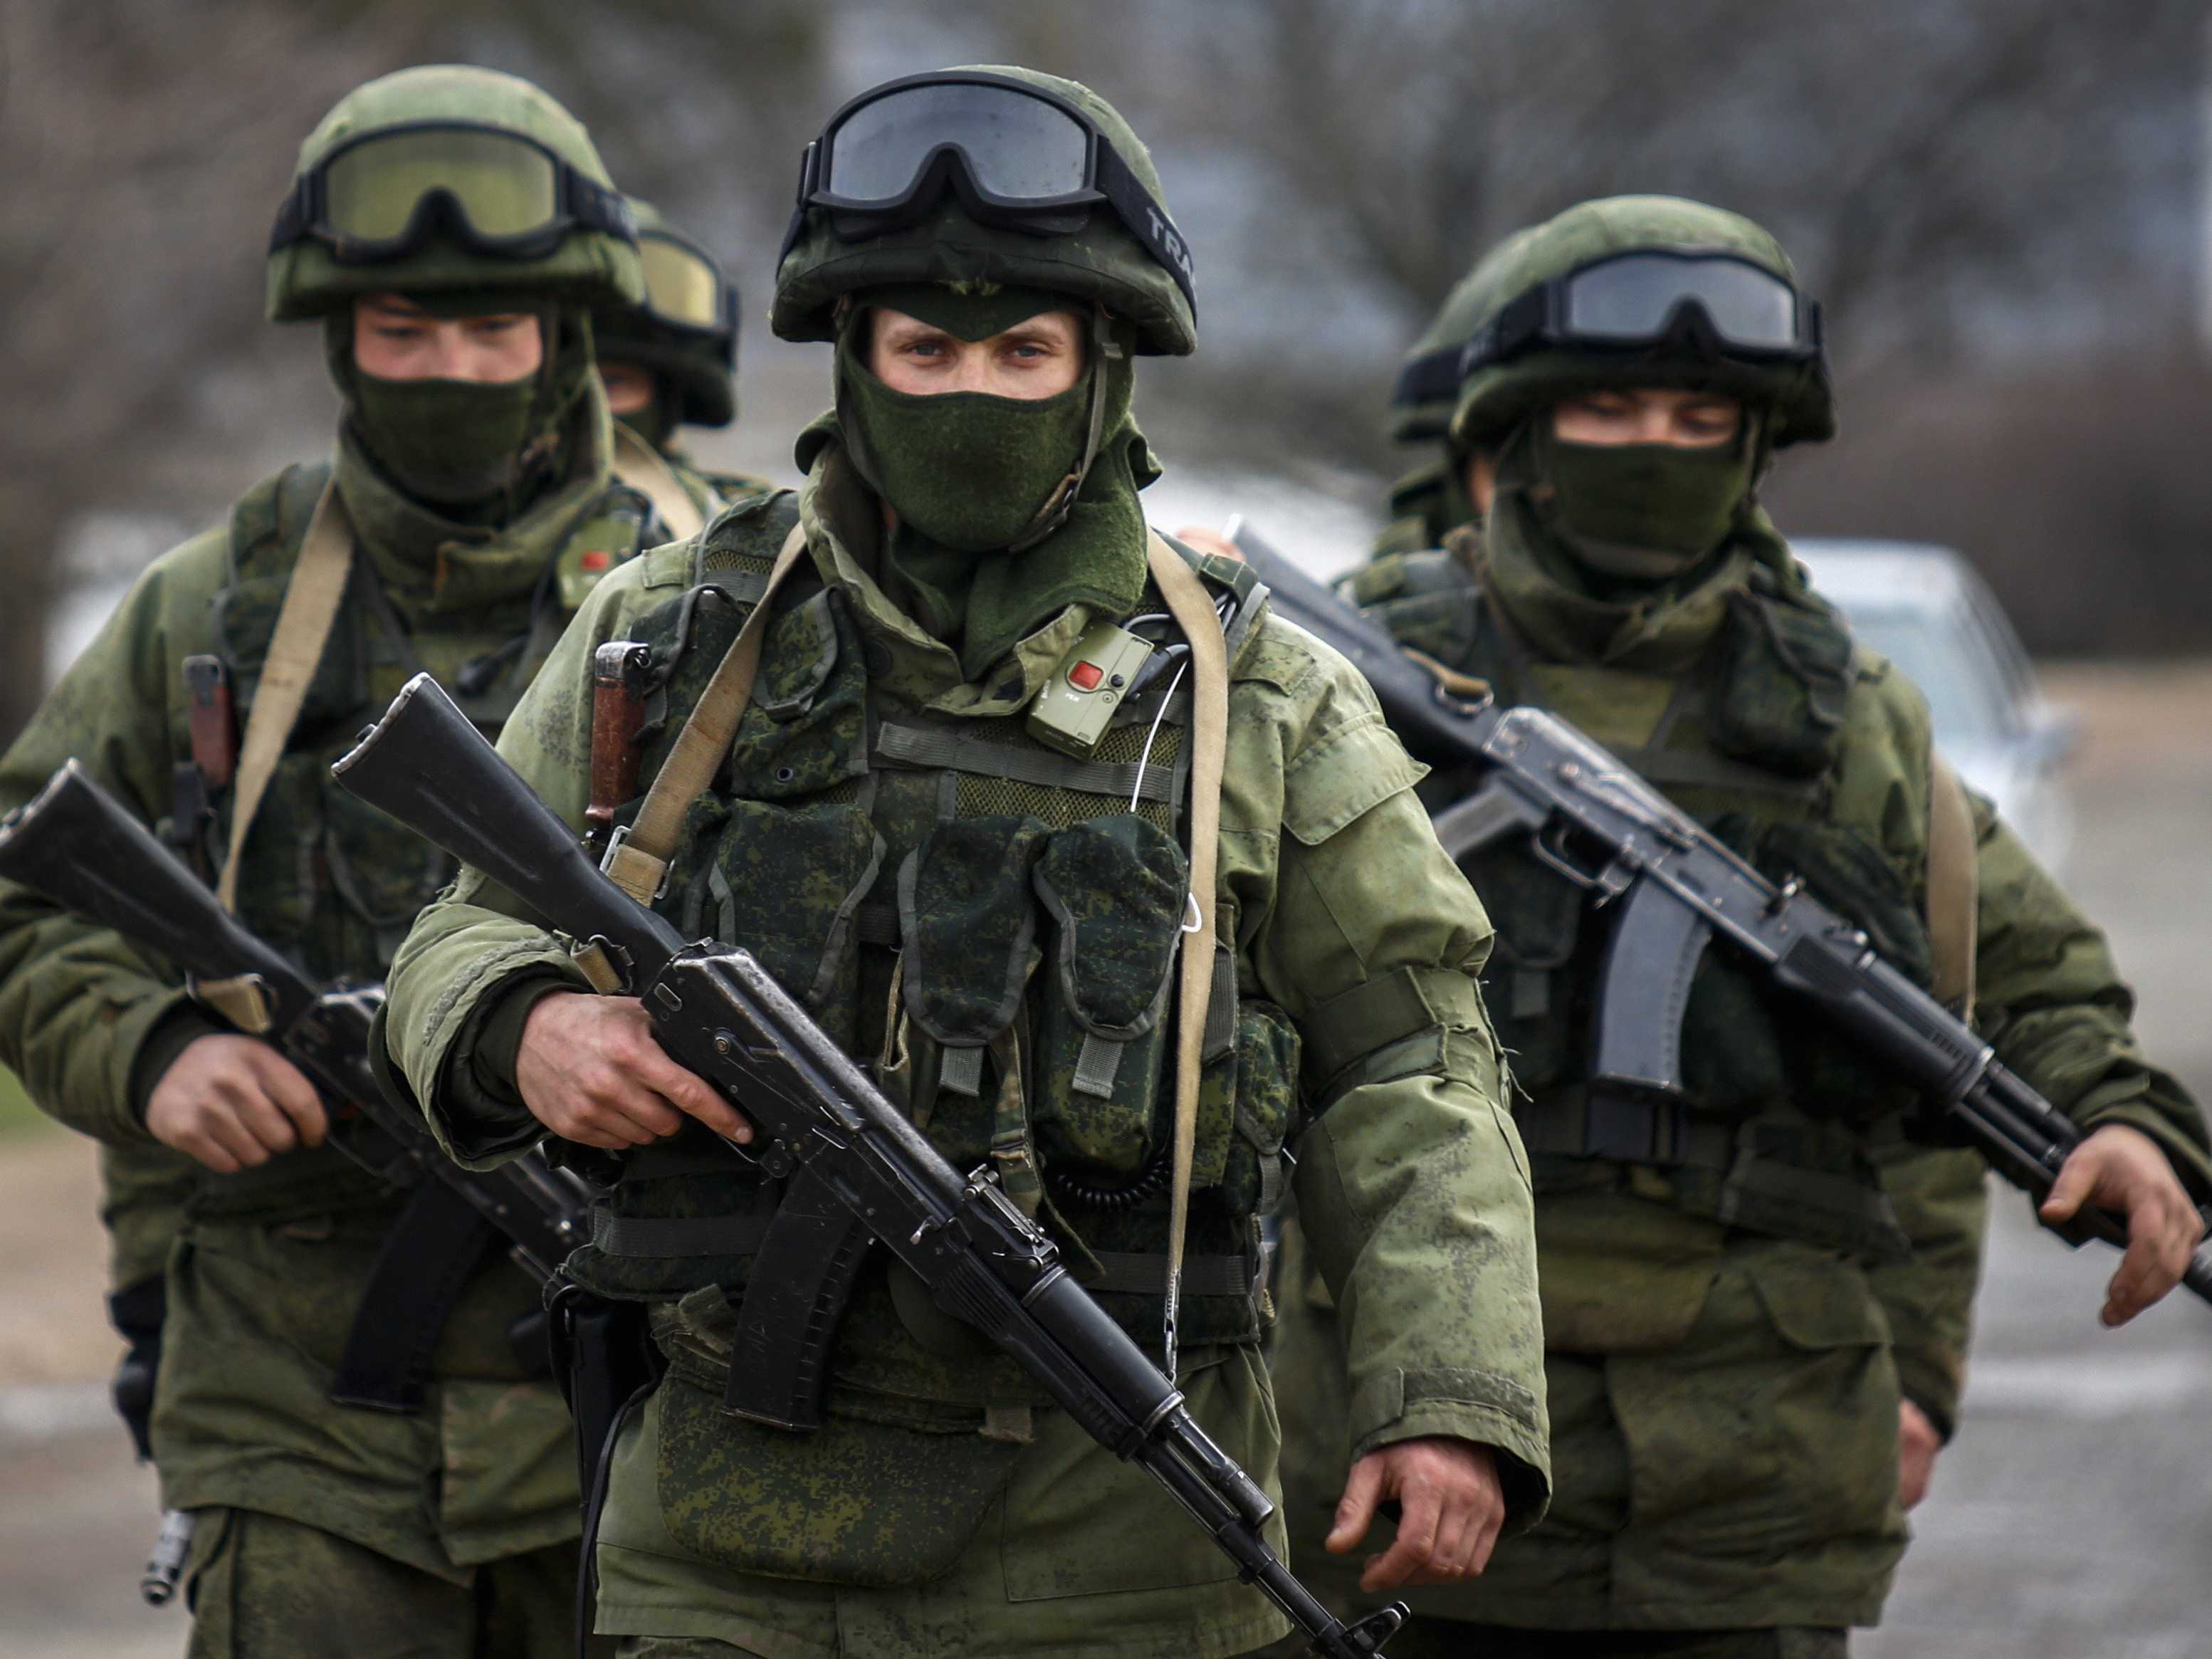 https://www.studentnewsdaily.com/wp-content/uploads/2014/04/russian-troops.jpg